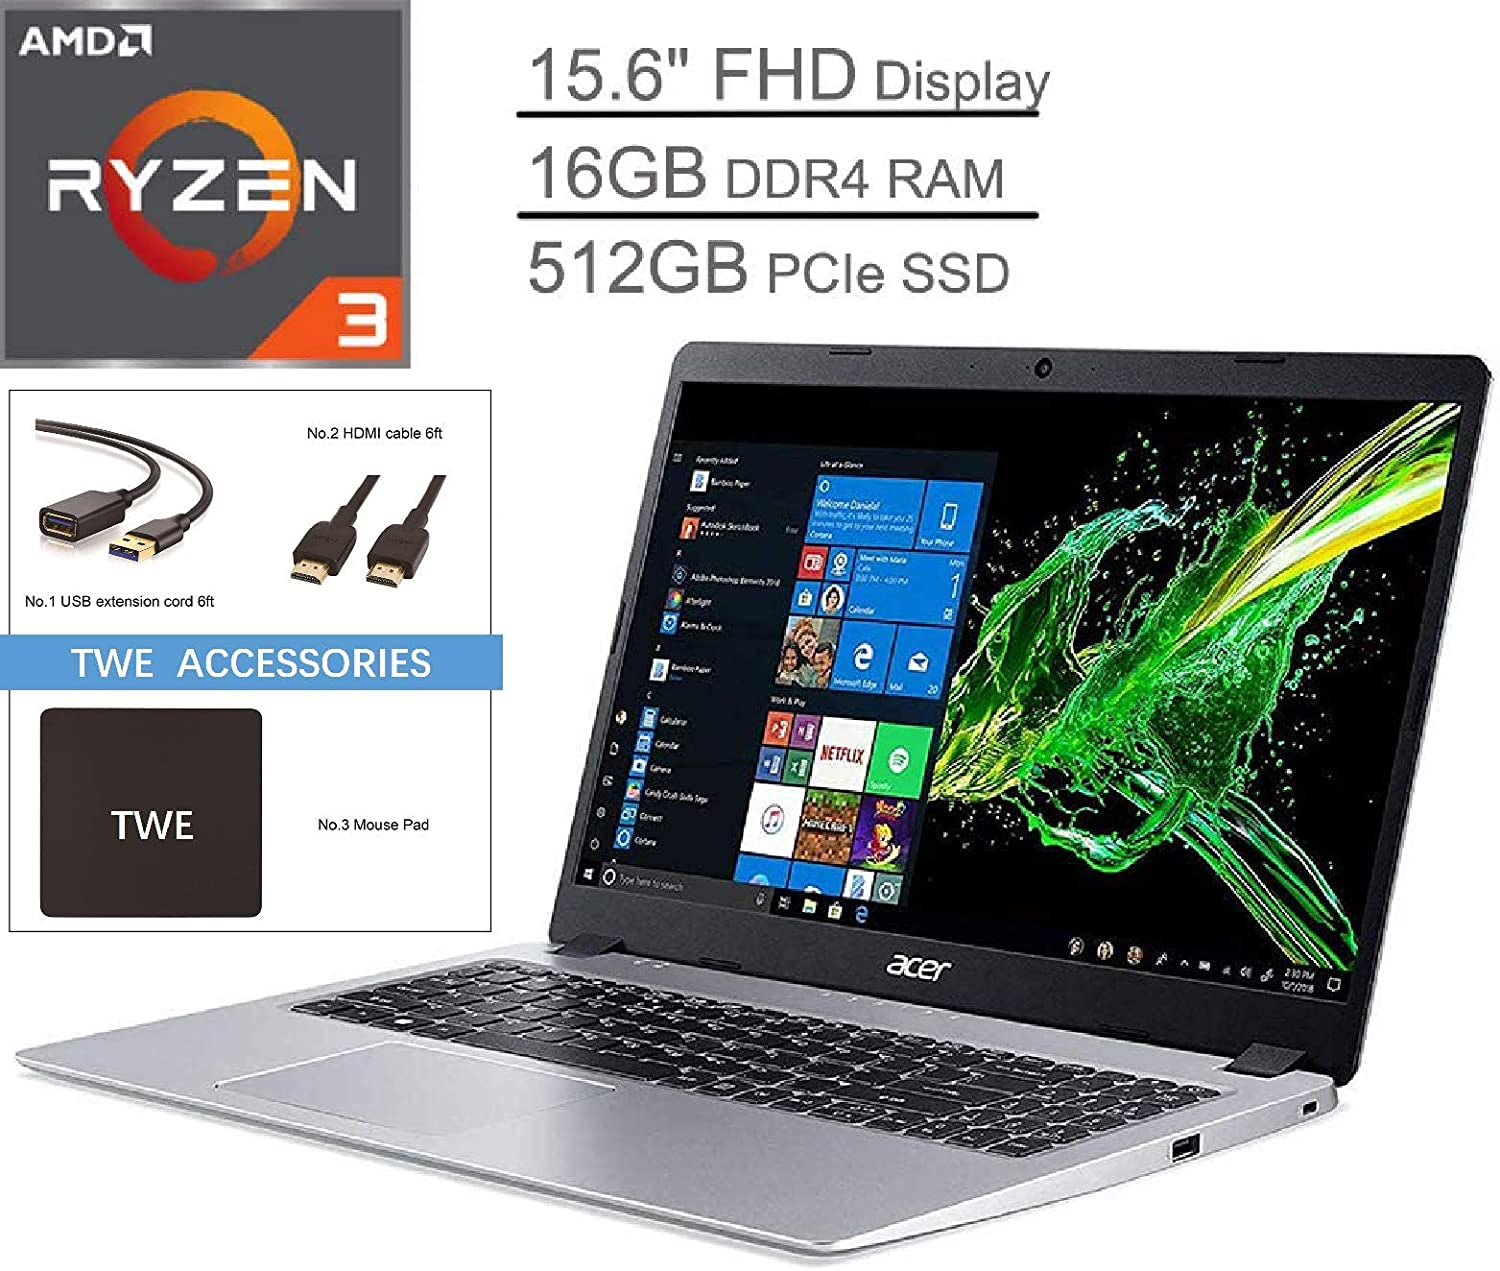 "Acer Aspire 5 15.6"" FHD LED-Backlit Display Laptop, AMD Ryzen 3 3200U Up to 3.5GHz, 16GB DDR4, 512GB PCle SSD, 802.11ac, Bluetooth, HDMI, Backlit Keyboard, Webcam, Windows 10 S, TWE Accessory Bundle"